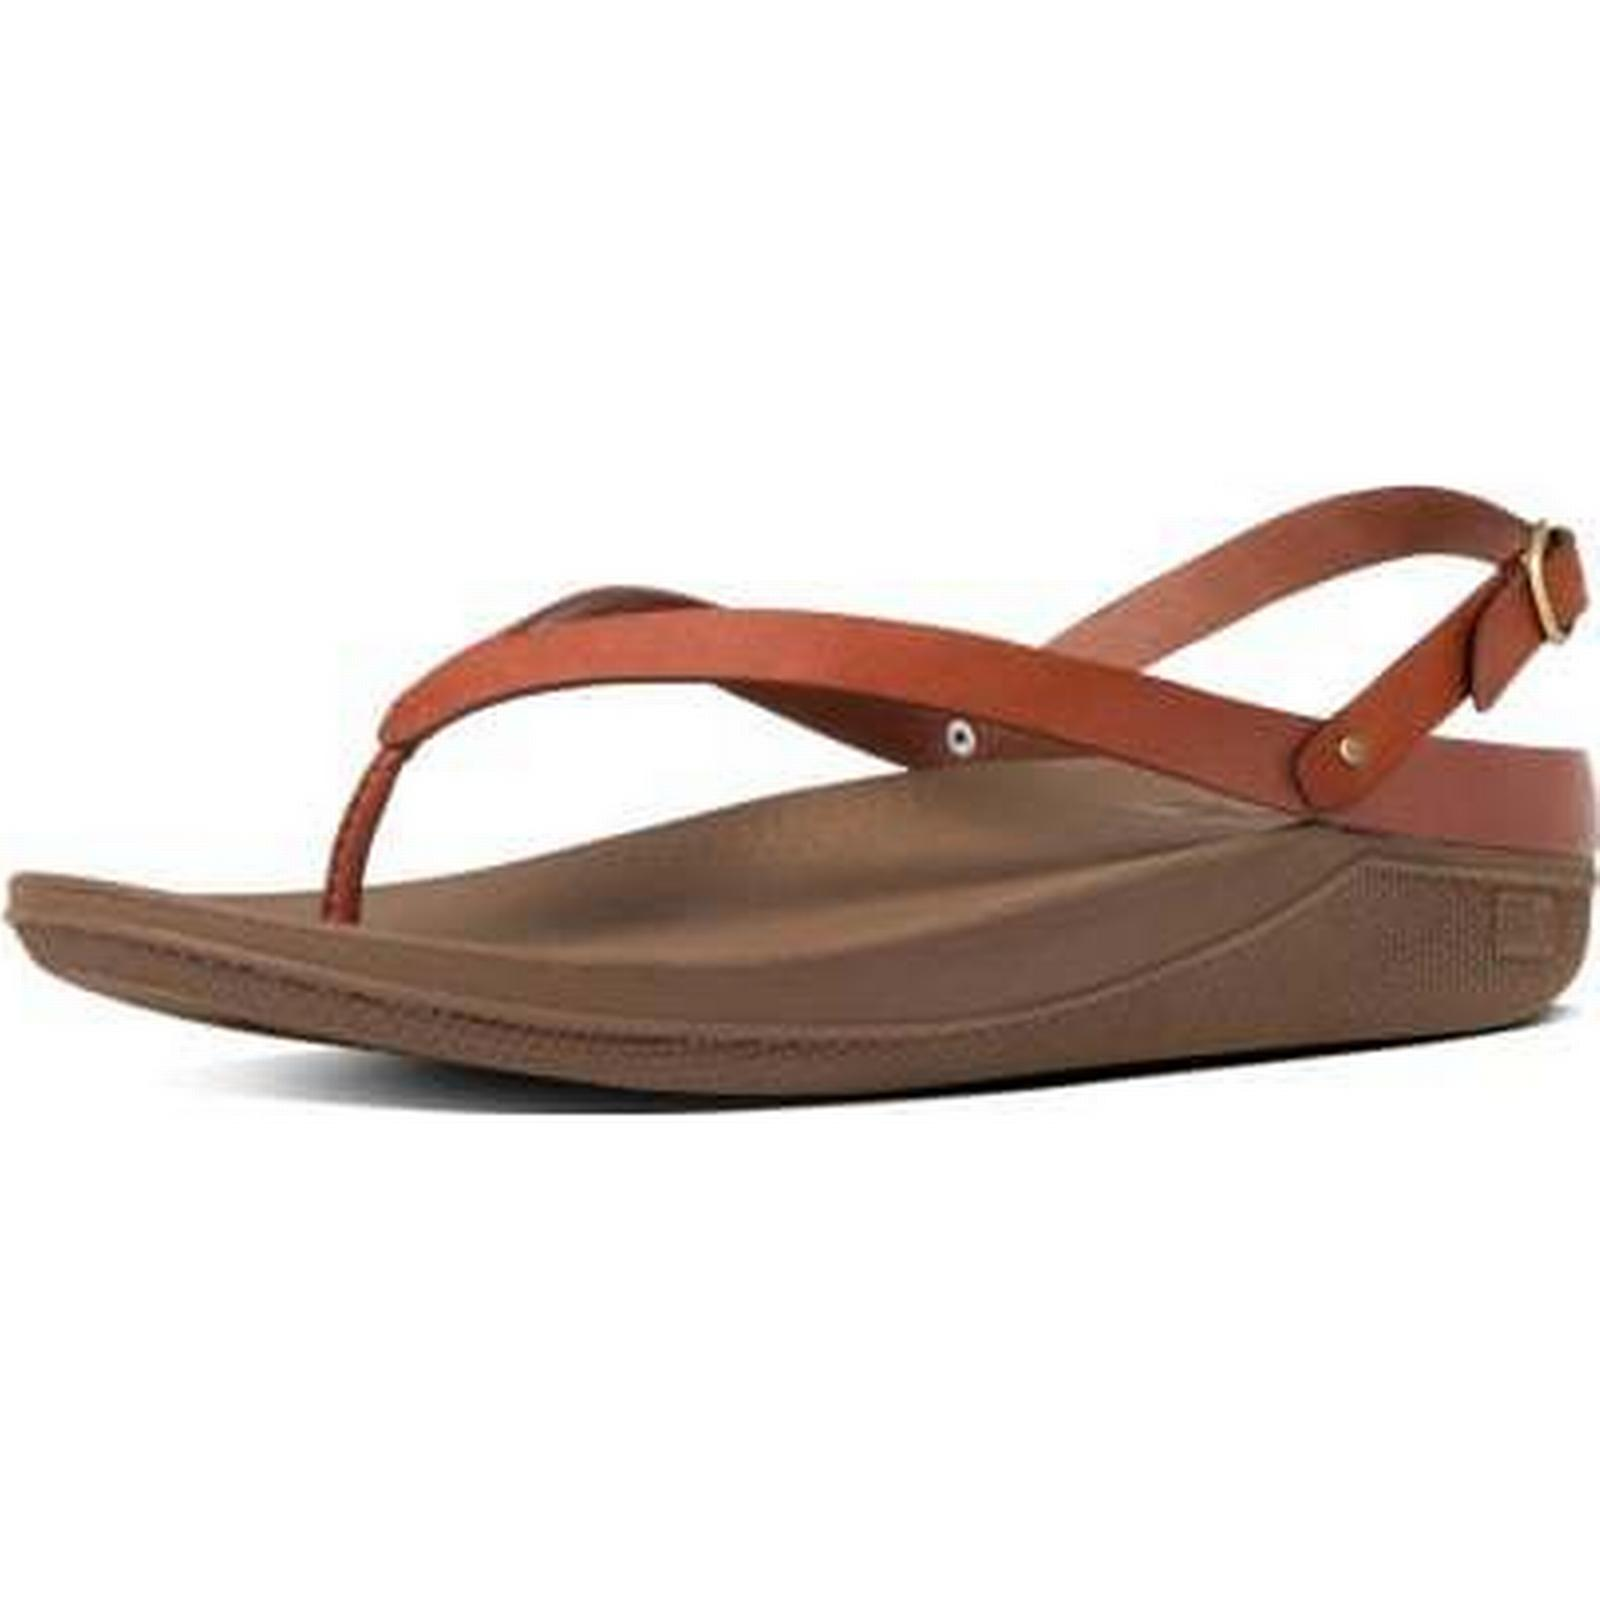 FitFlop FLIP FITFLOP FLIP LADIES SANDALS SANDALS LADIES Size: 8, Colour: DARK TAN 7aa0a8